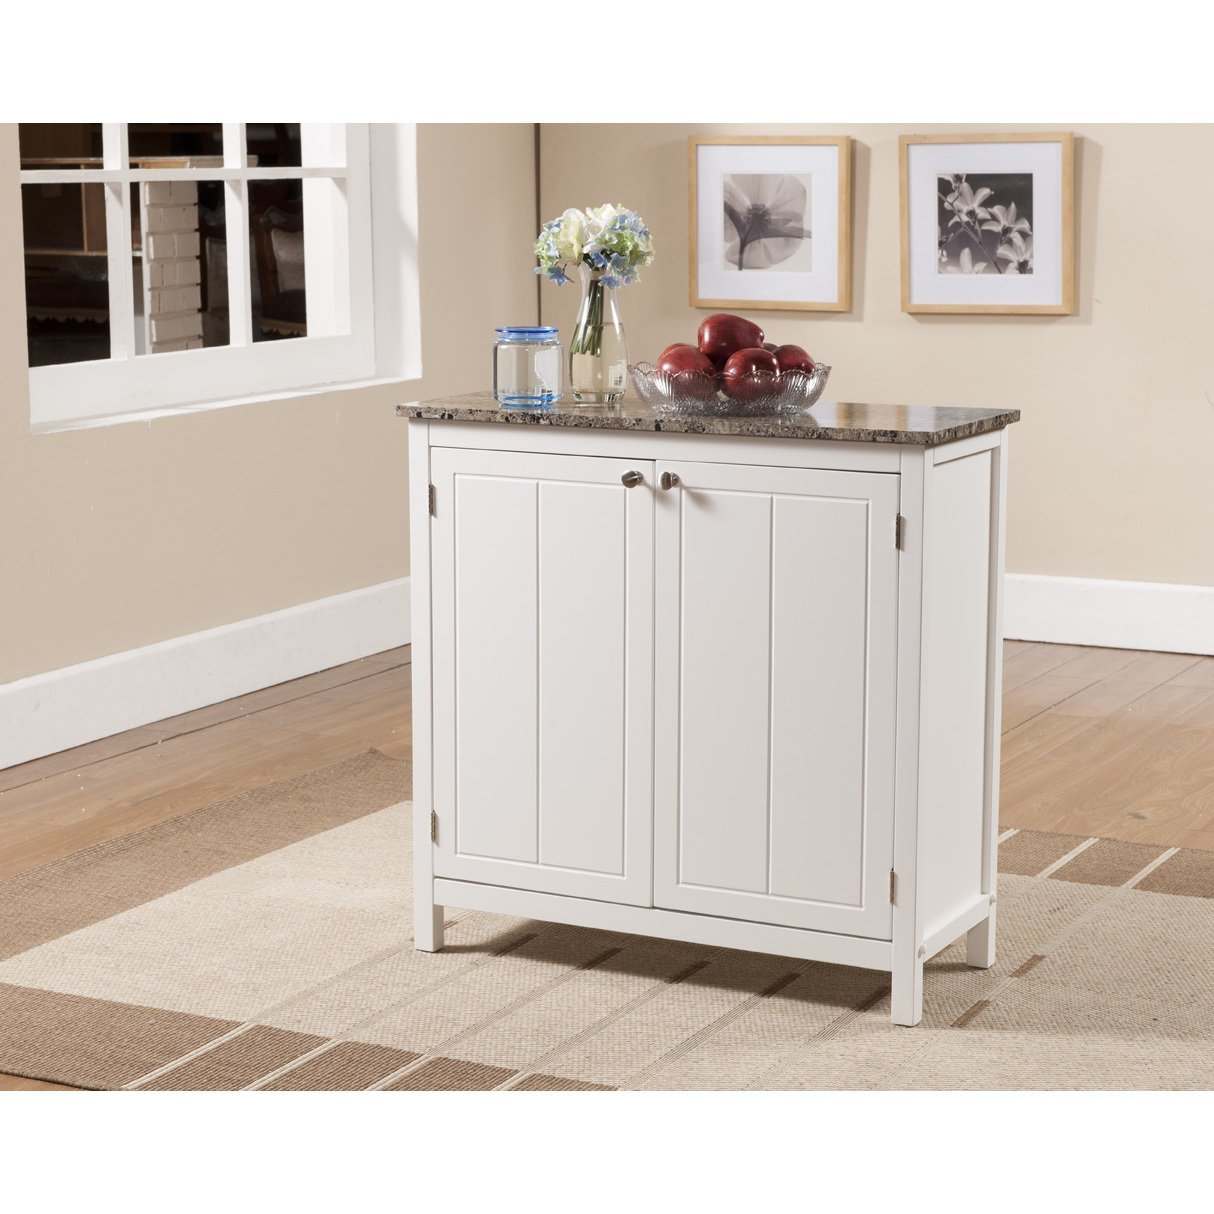 Amazon Com Havenside Home Marineland White And Faux Marble Kitchen